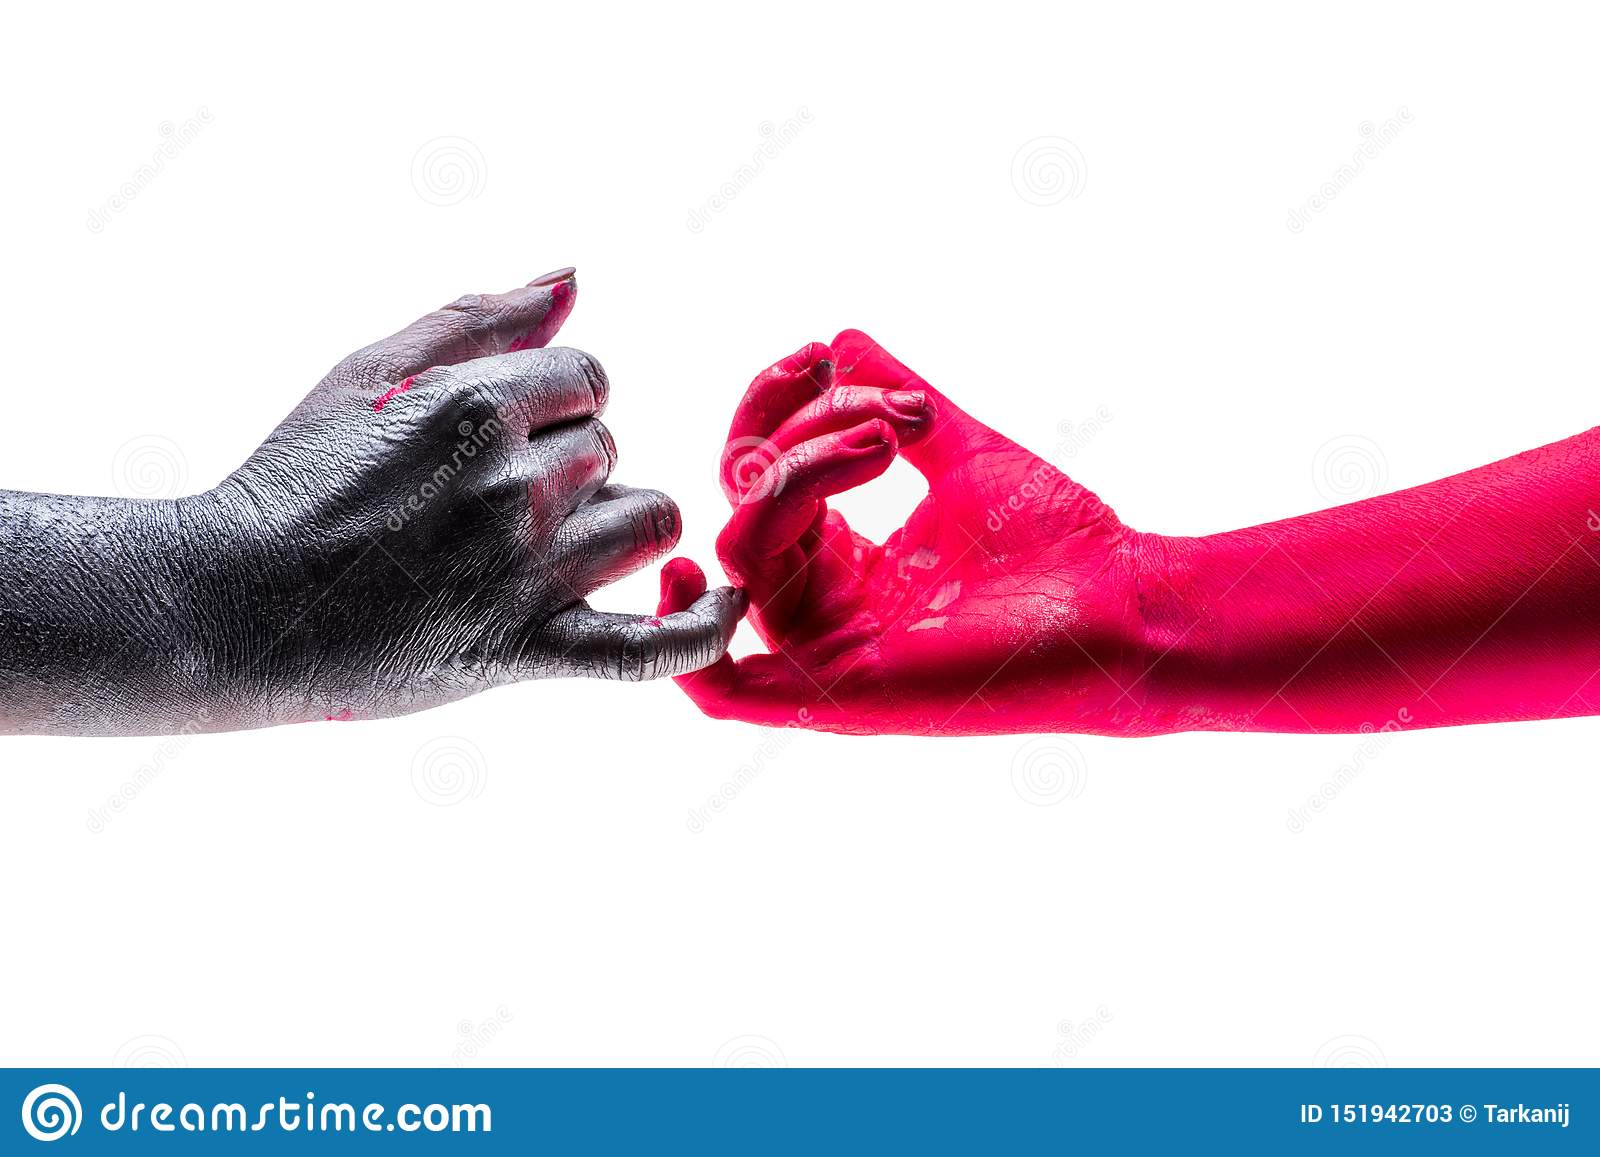 Two people carefully touch each other`s little fingers, hands colored in different colors. Concept of war and peace